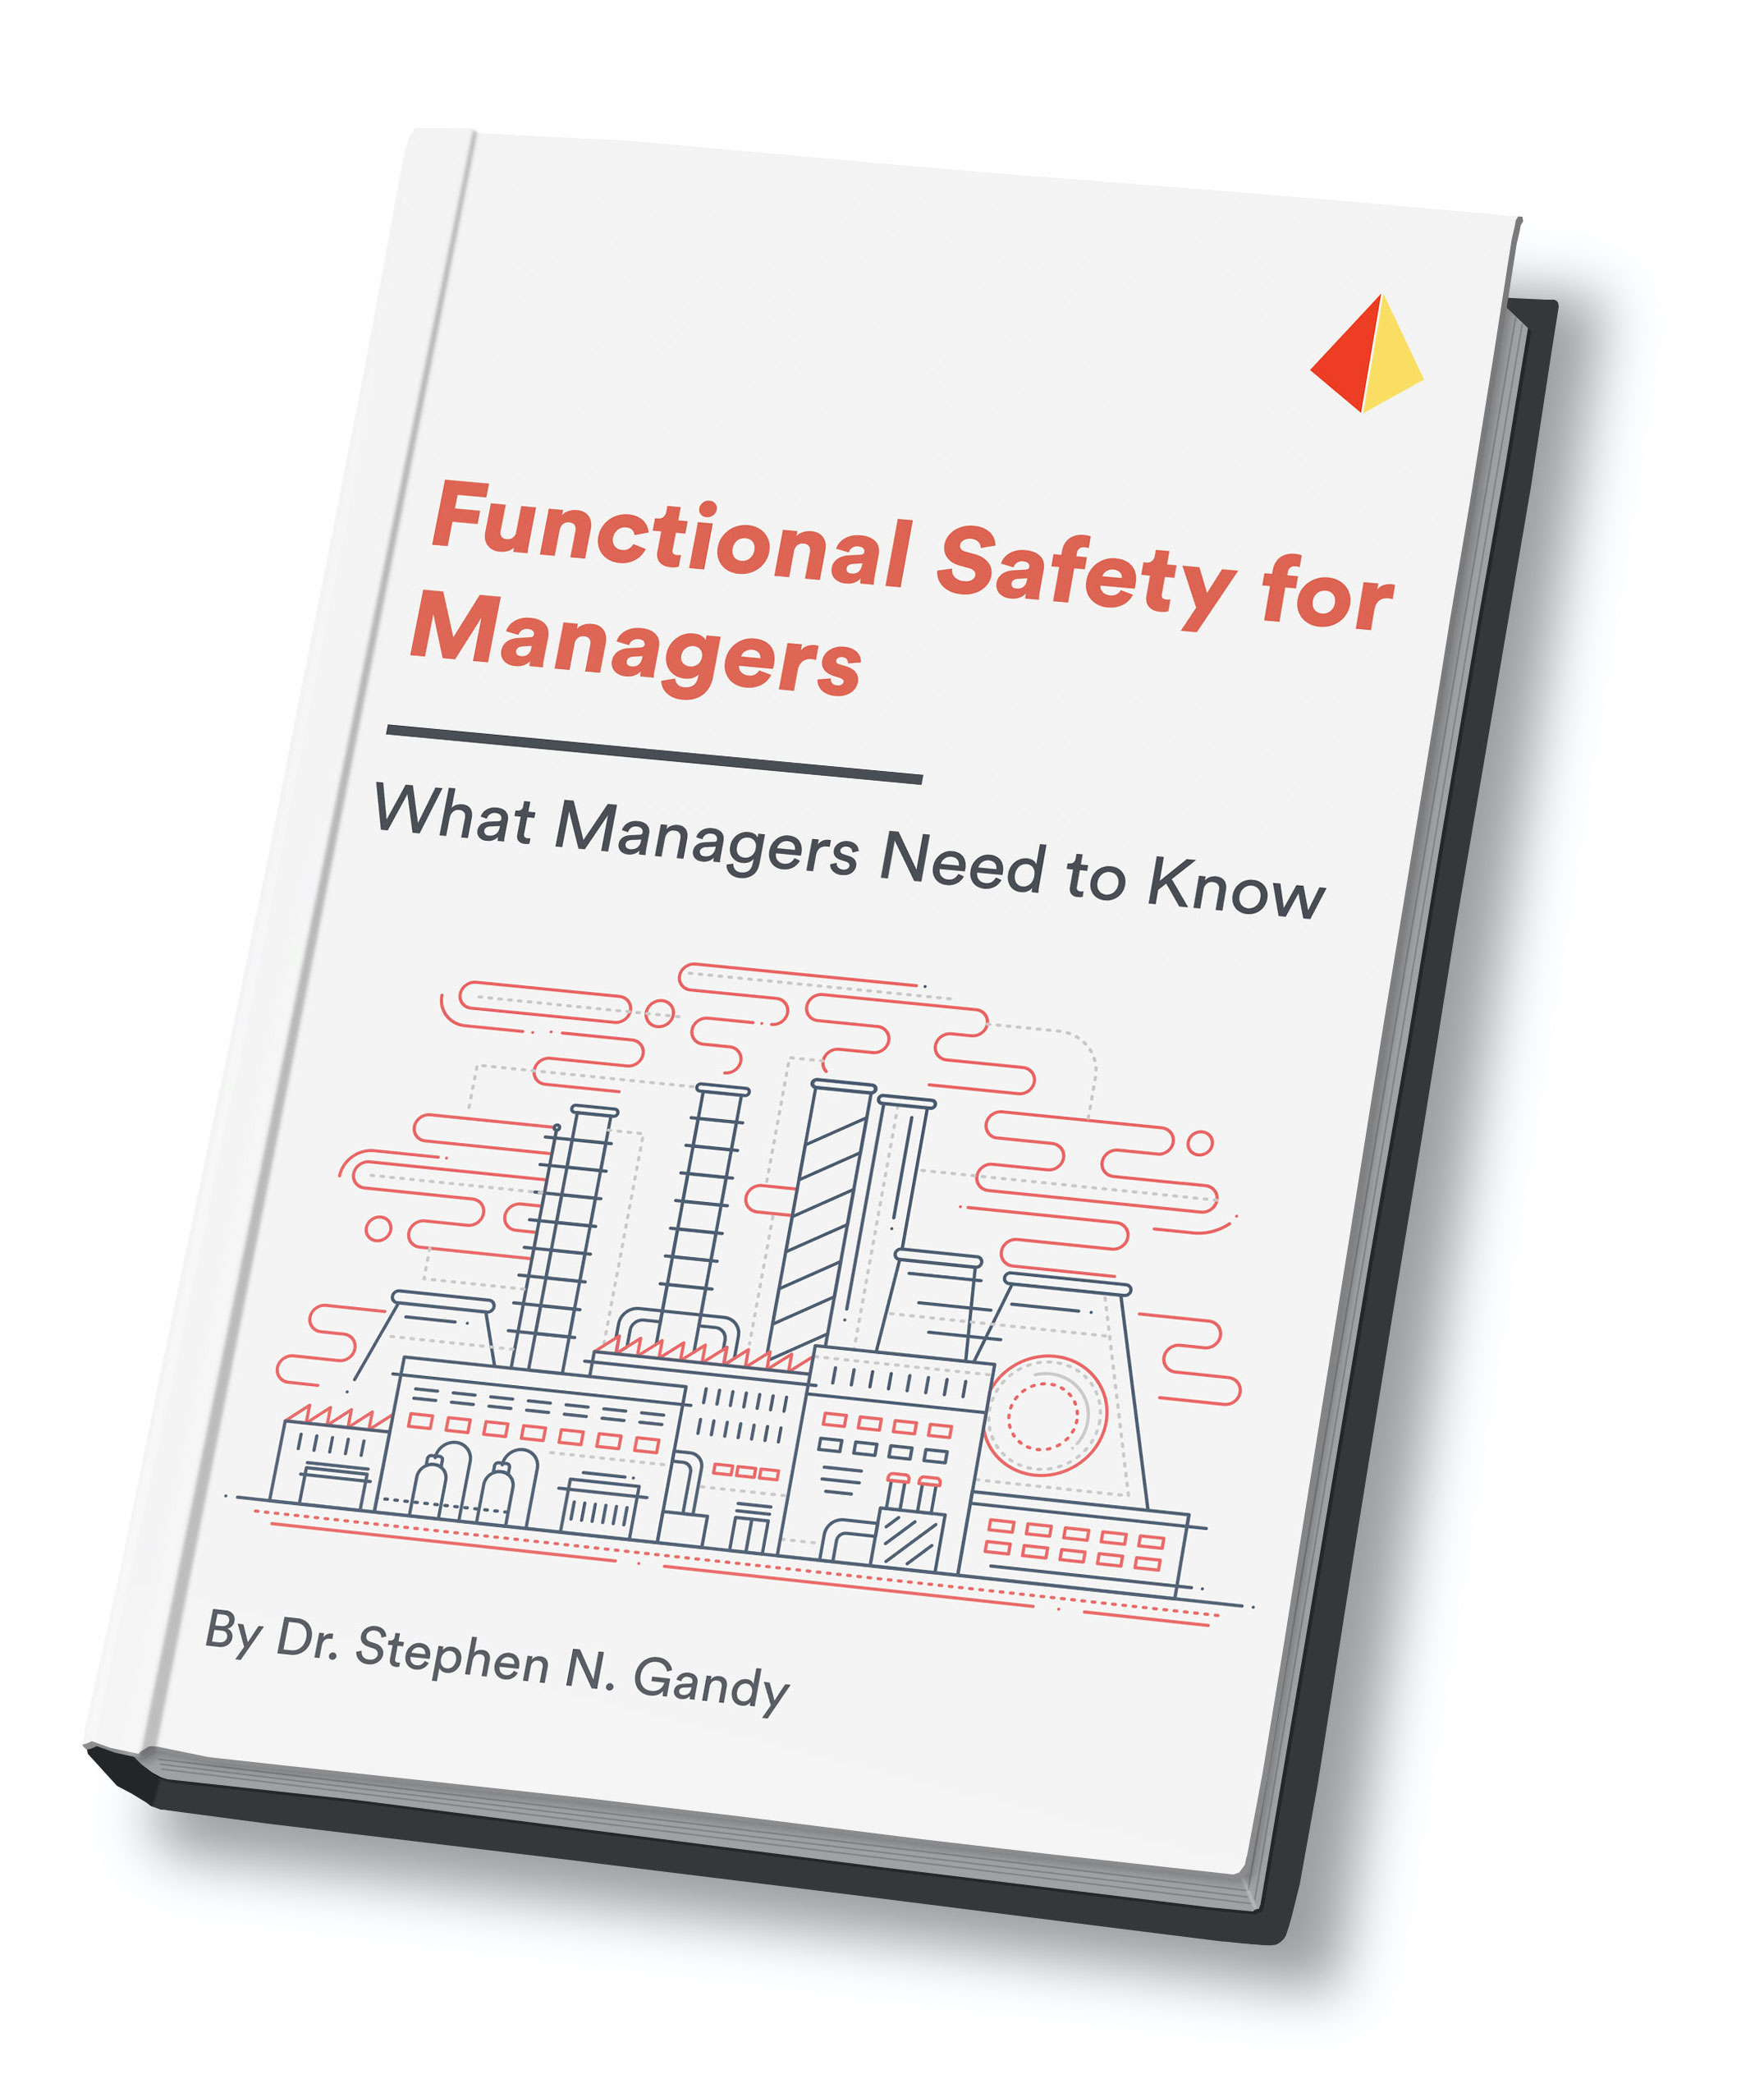 Functional Safety for Managers